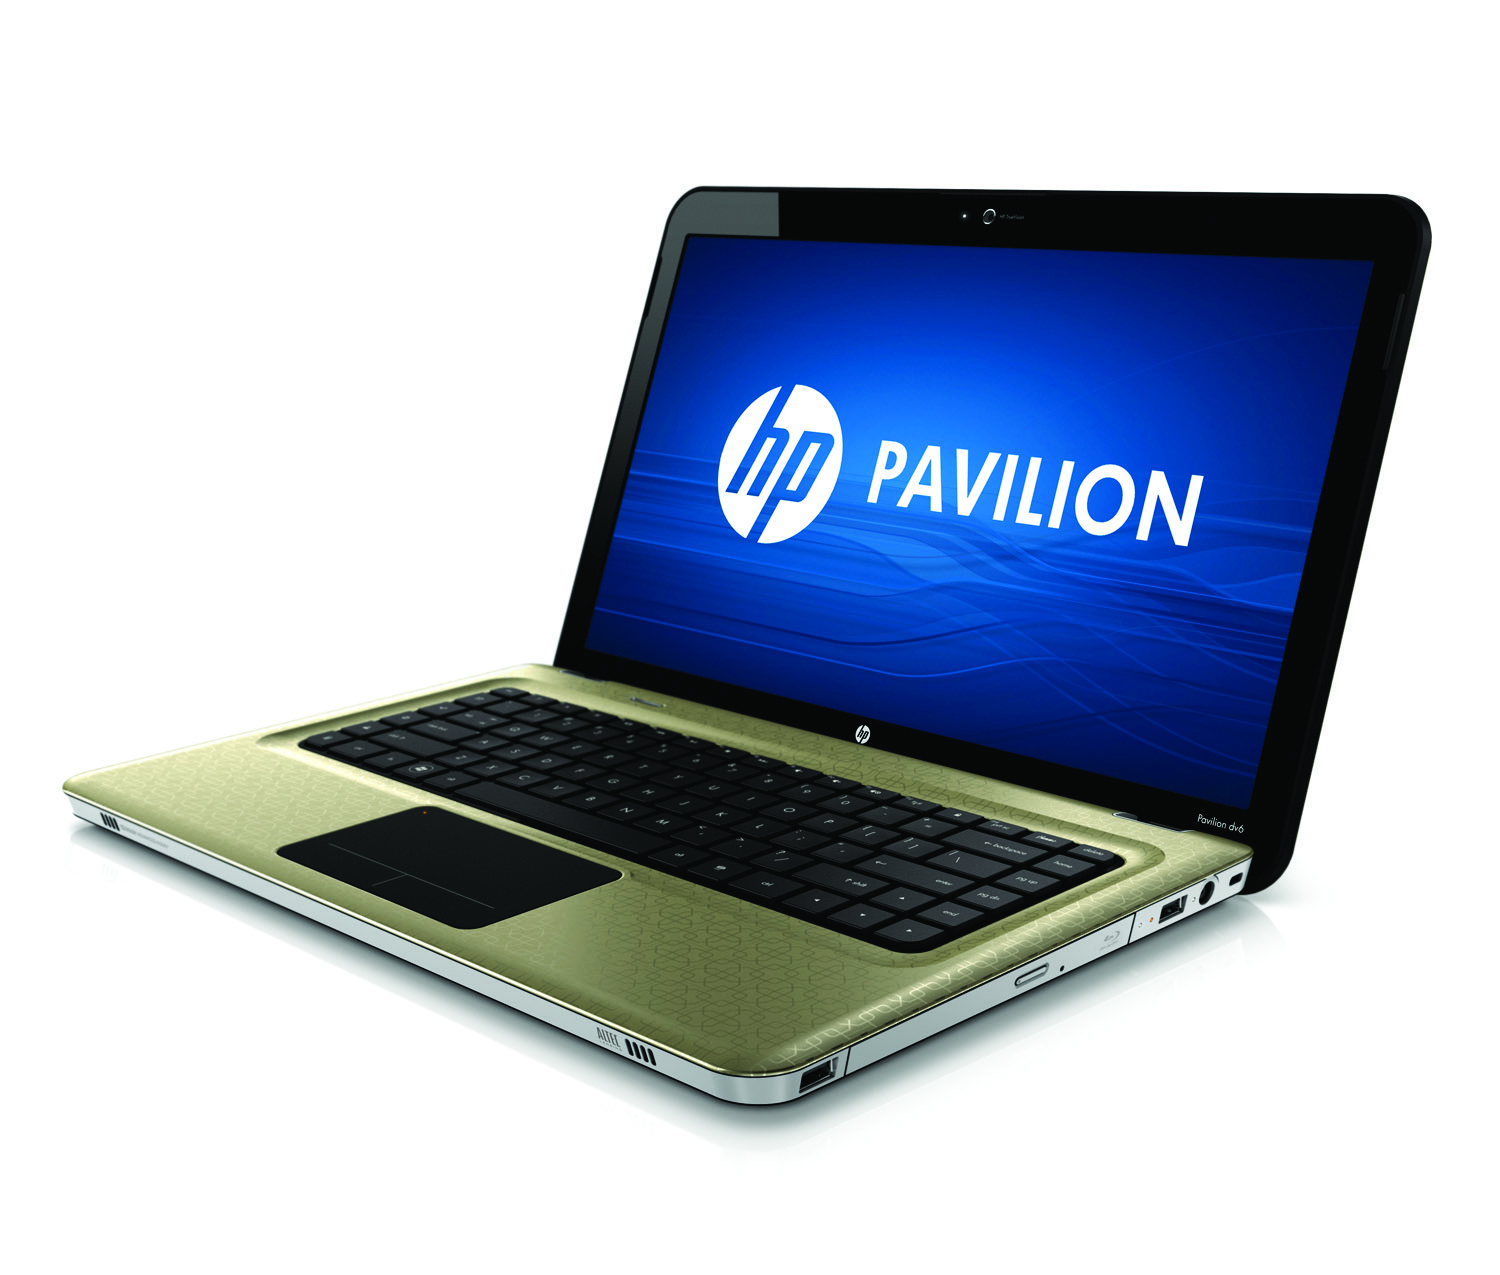 HP Pavilion dv6 Entertainment PC, champagne, front left open